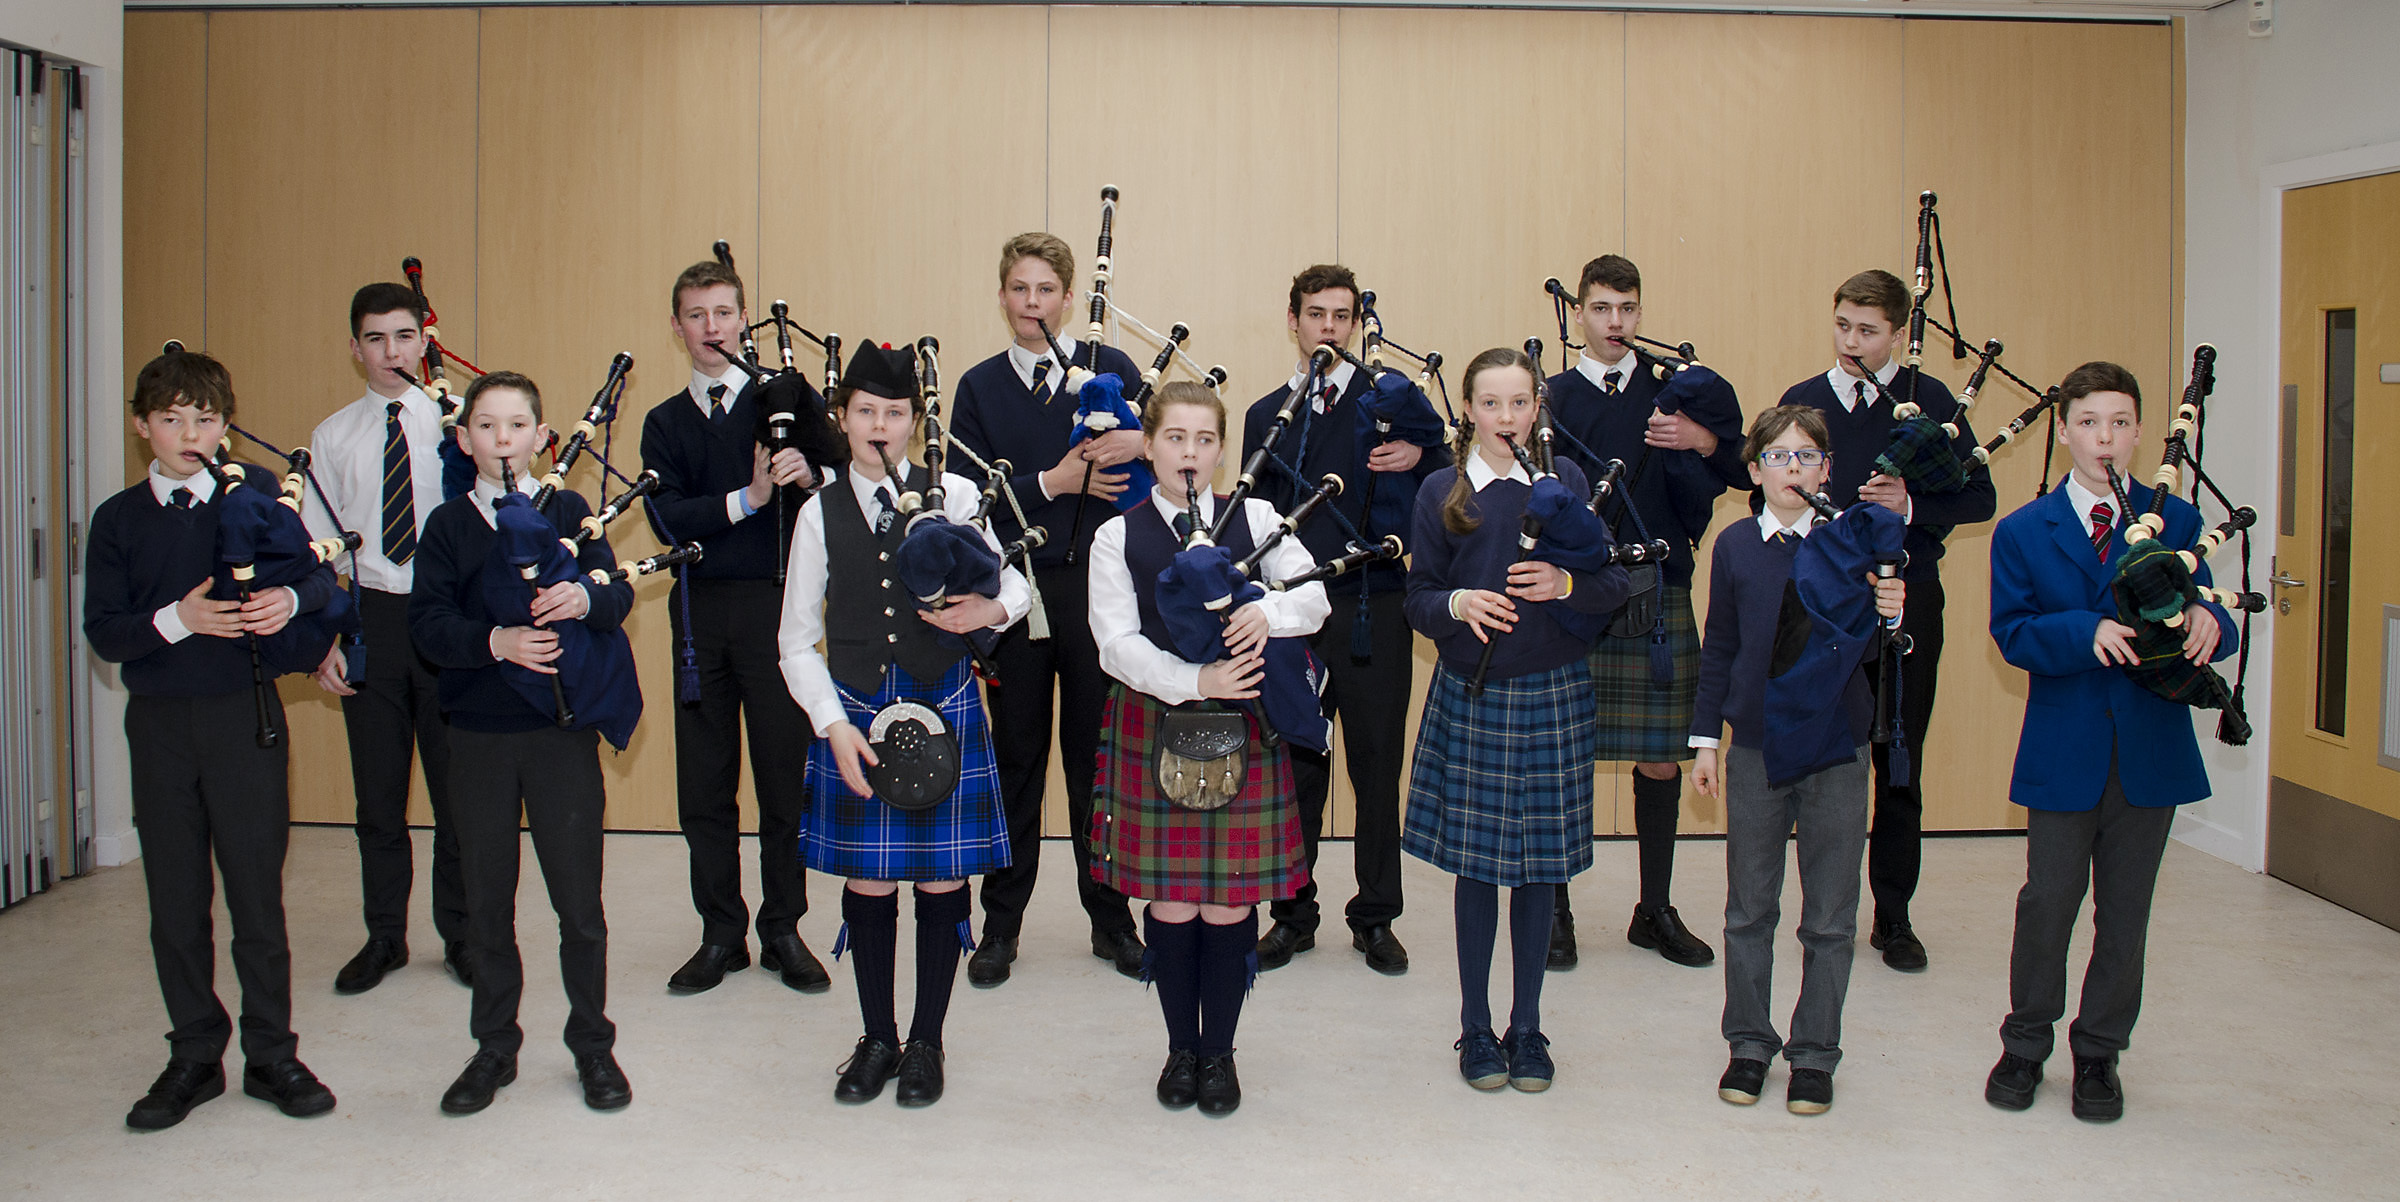 Taking part in the bagpipe section youngsters from Perth Academy, Strathallan, Perth and District Pipe Band, Kinross and District Pipe Band, and Craigclowan School.